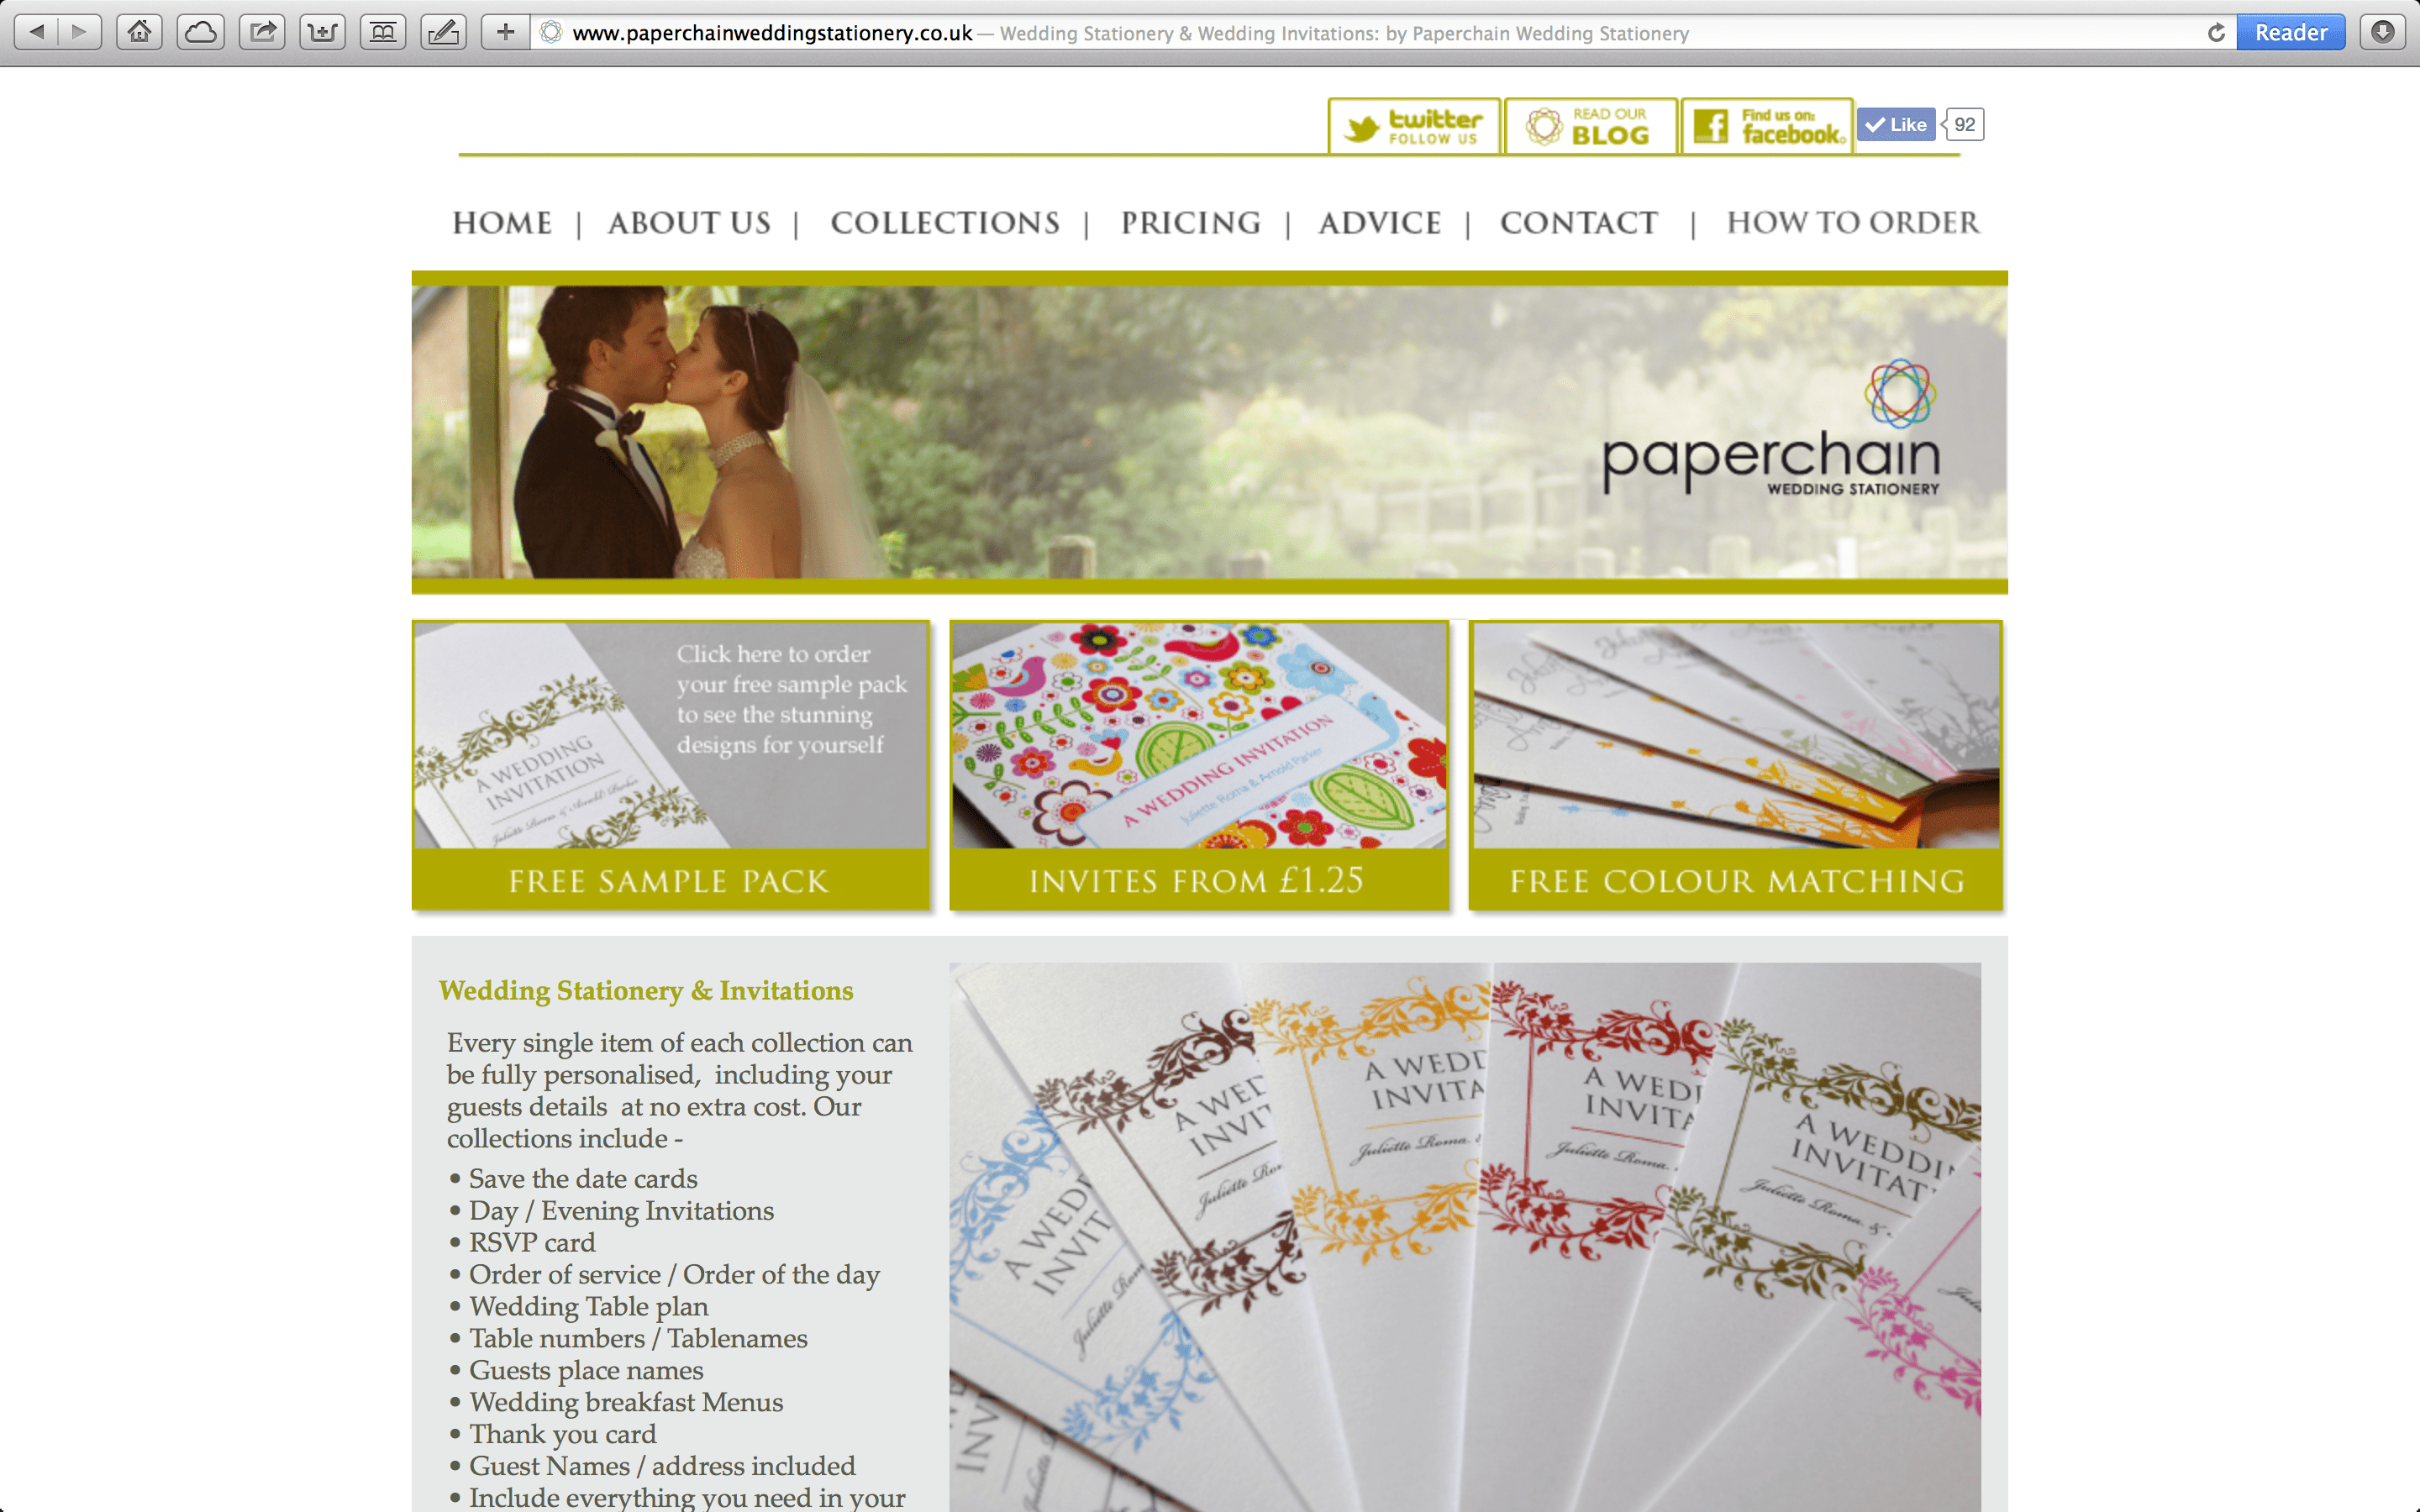 Our old wedding stationery site